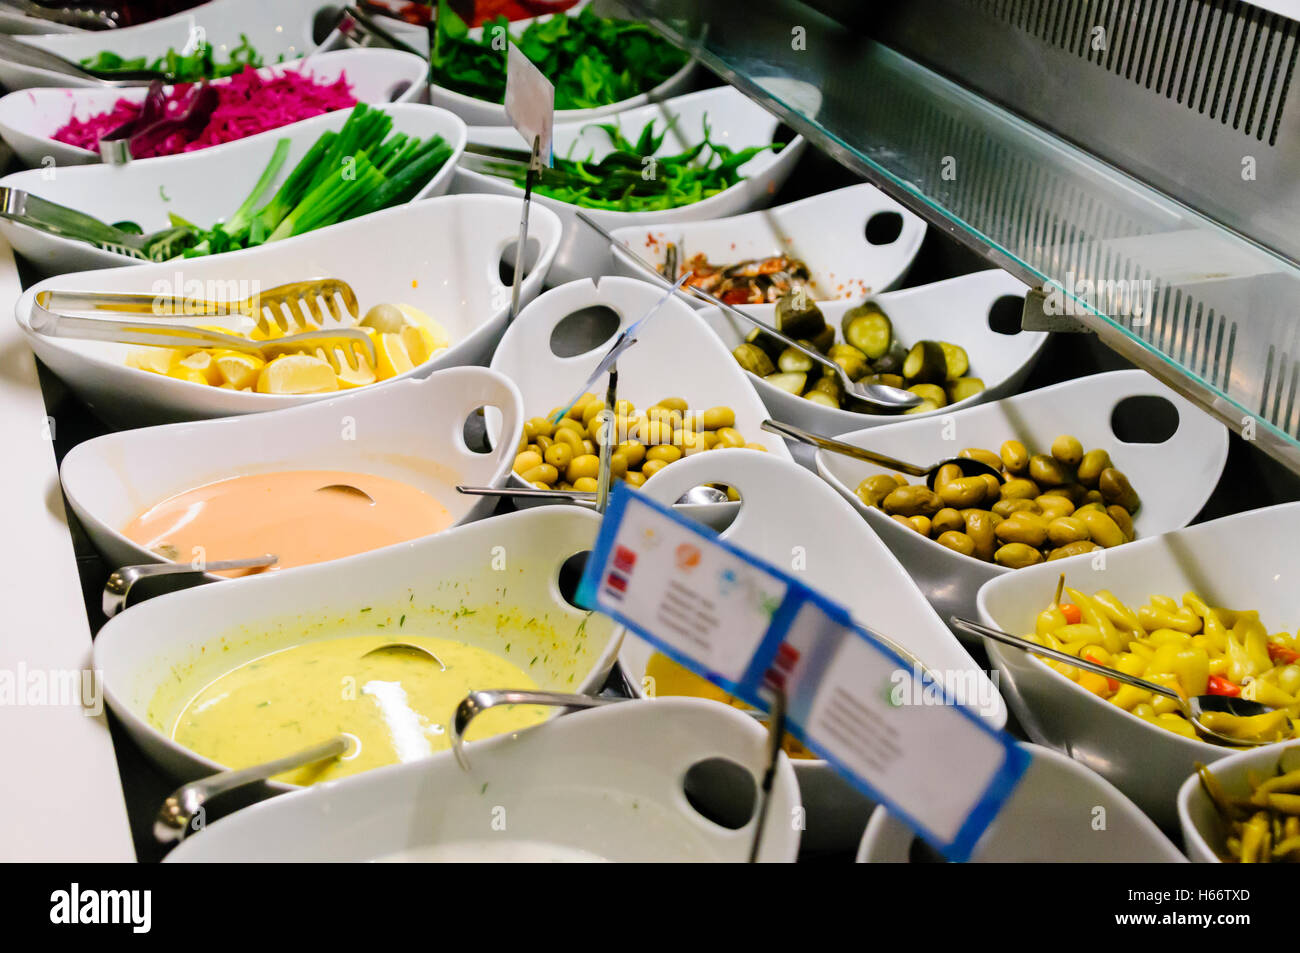 A selection of olives, chilies, sauces and garnishes at the buffet counter of a restaurant - Stock Image